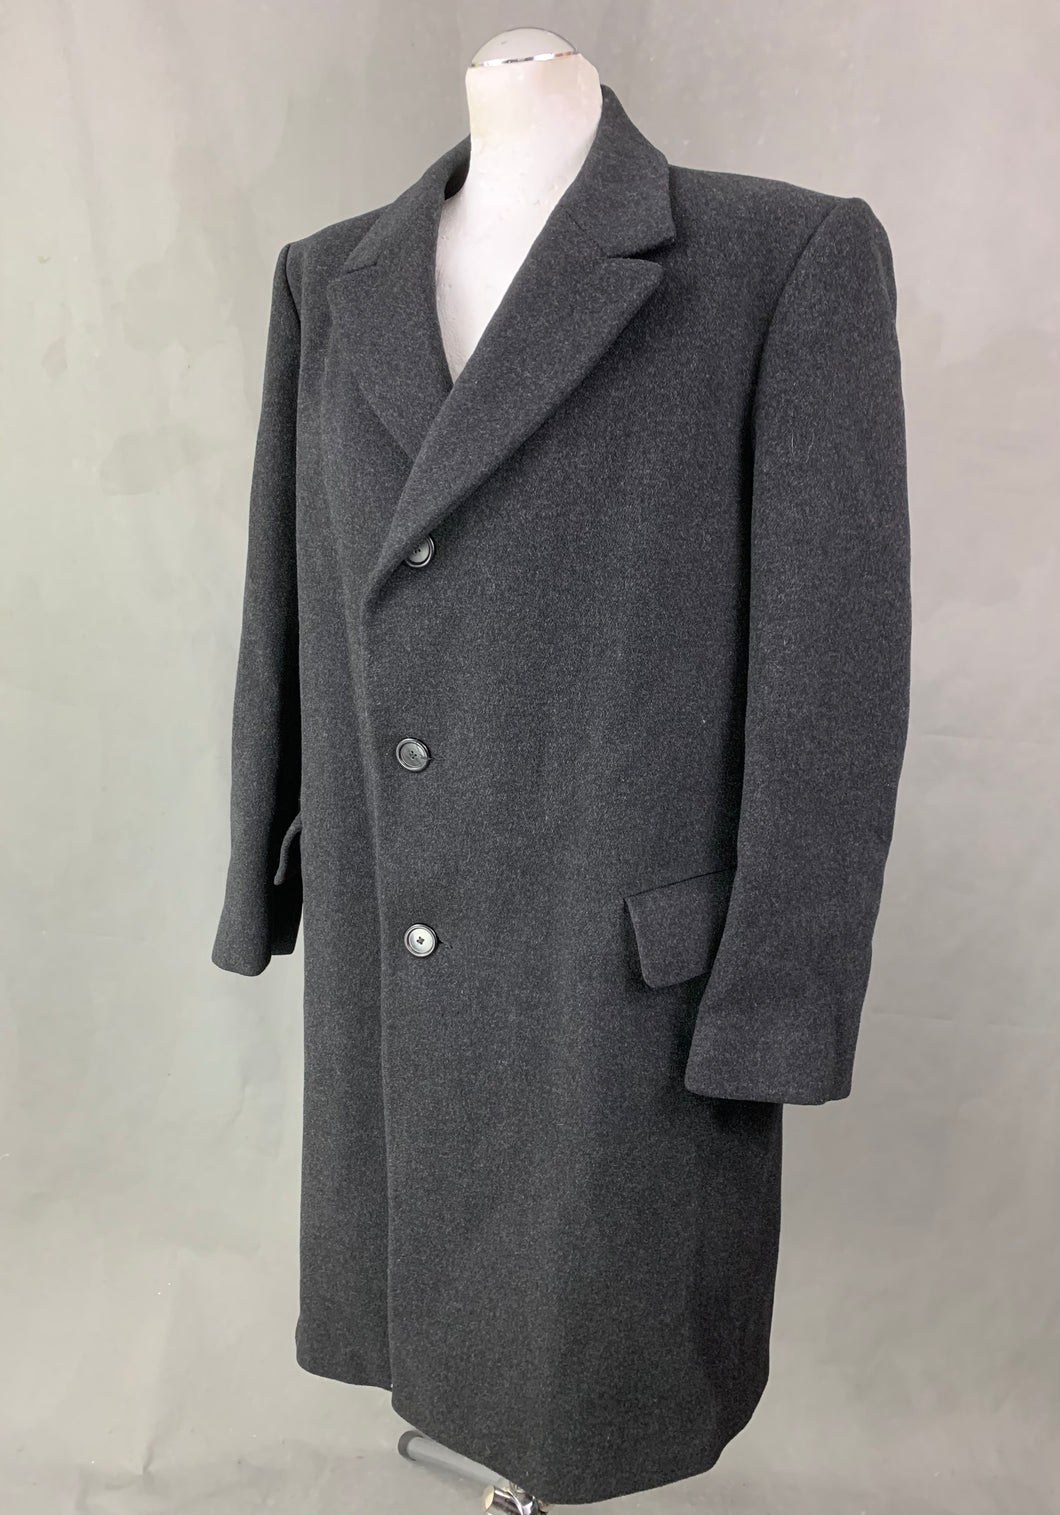 CROMBIE for John Lewis Mens 100% Wool COAT Size 46R Chest 46